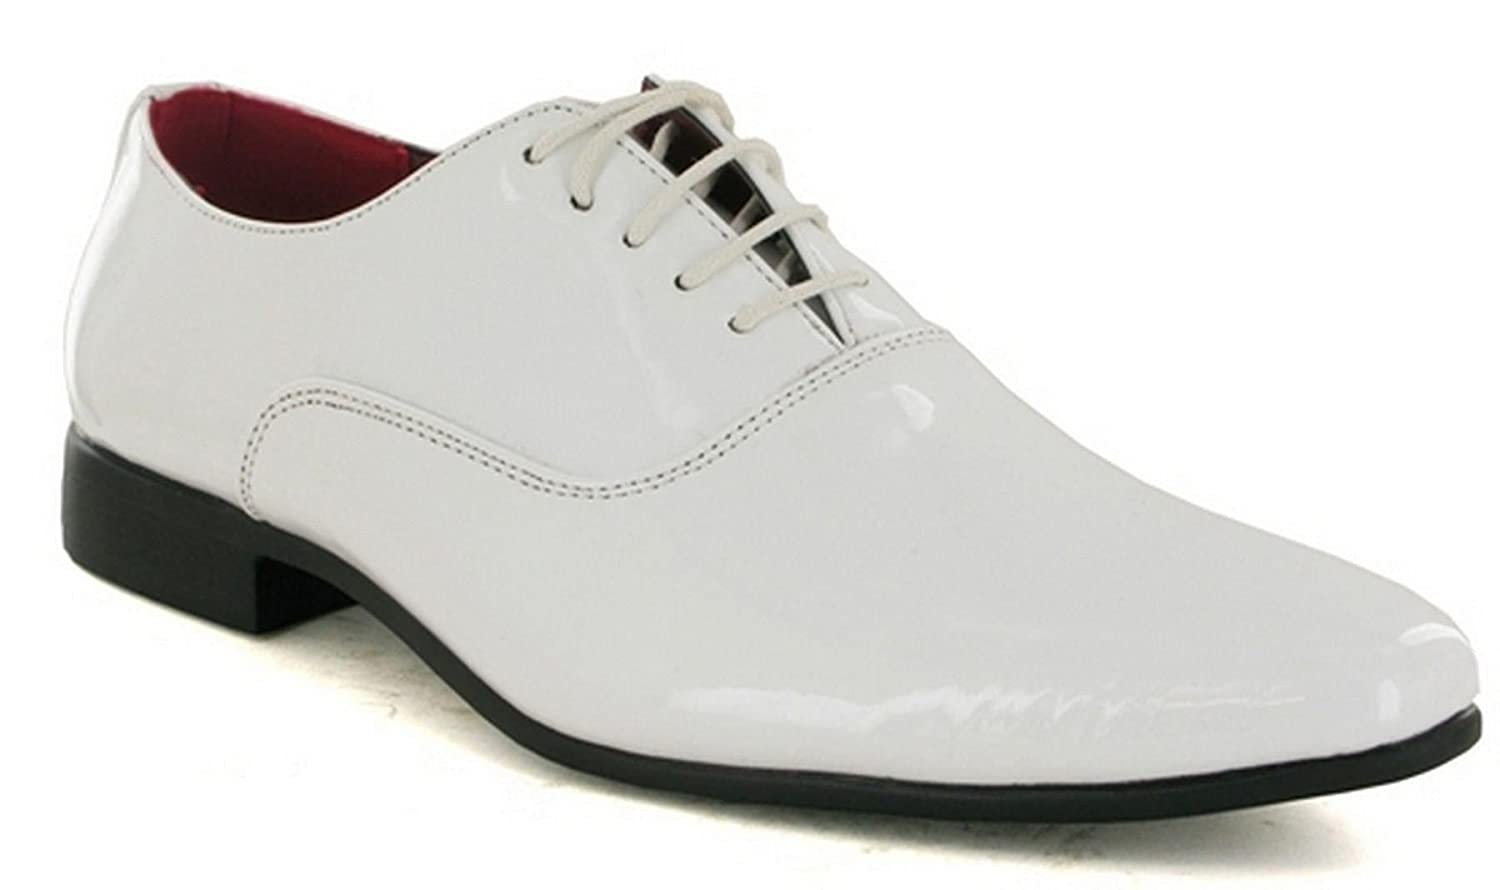 332e1810c7b theonlineshoeshop Mens New Shiny Patent Smart Lace Up Wedding Formal  Pointed Oxford Shoes Size